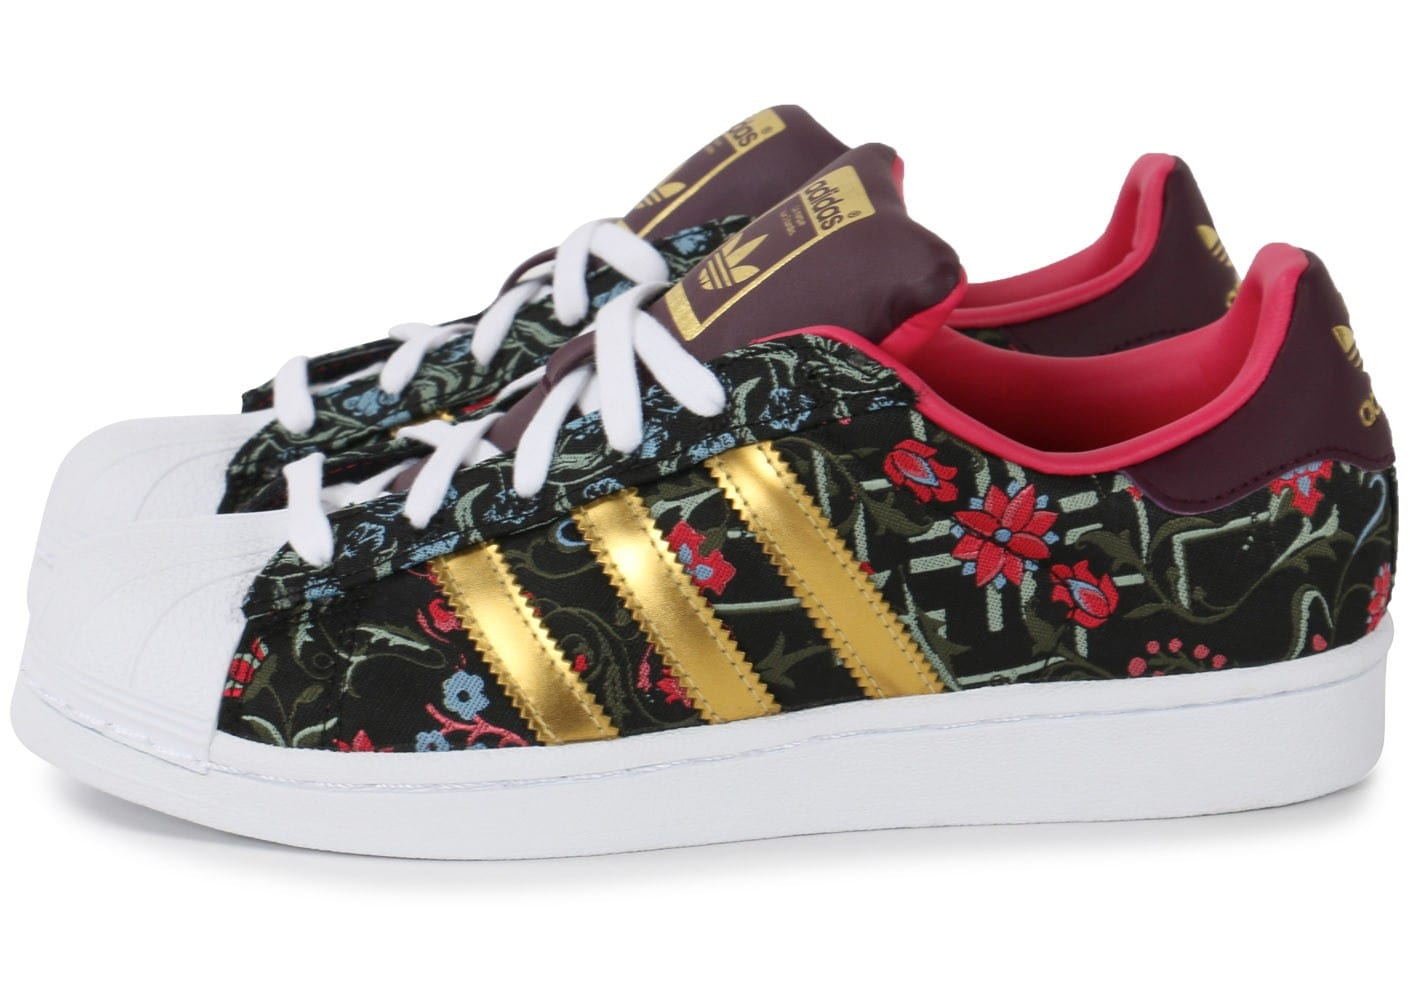 sale usa online cost charm new list adidas Superstar Jacquard Floral - Chaussures adidas - Chausport